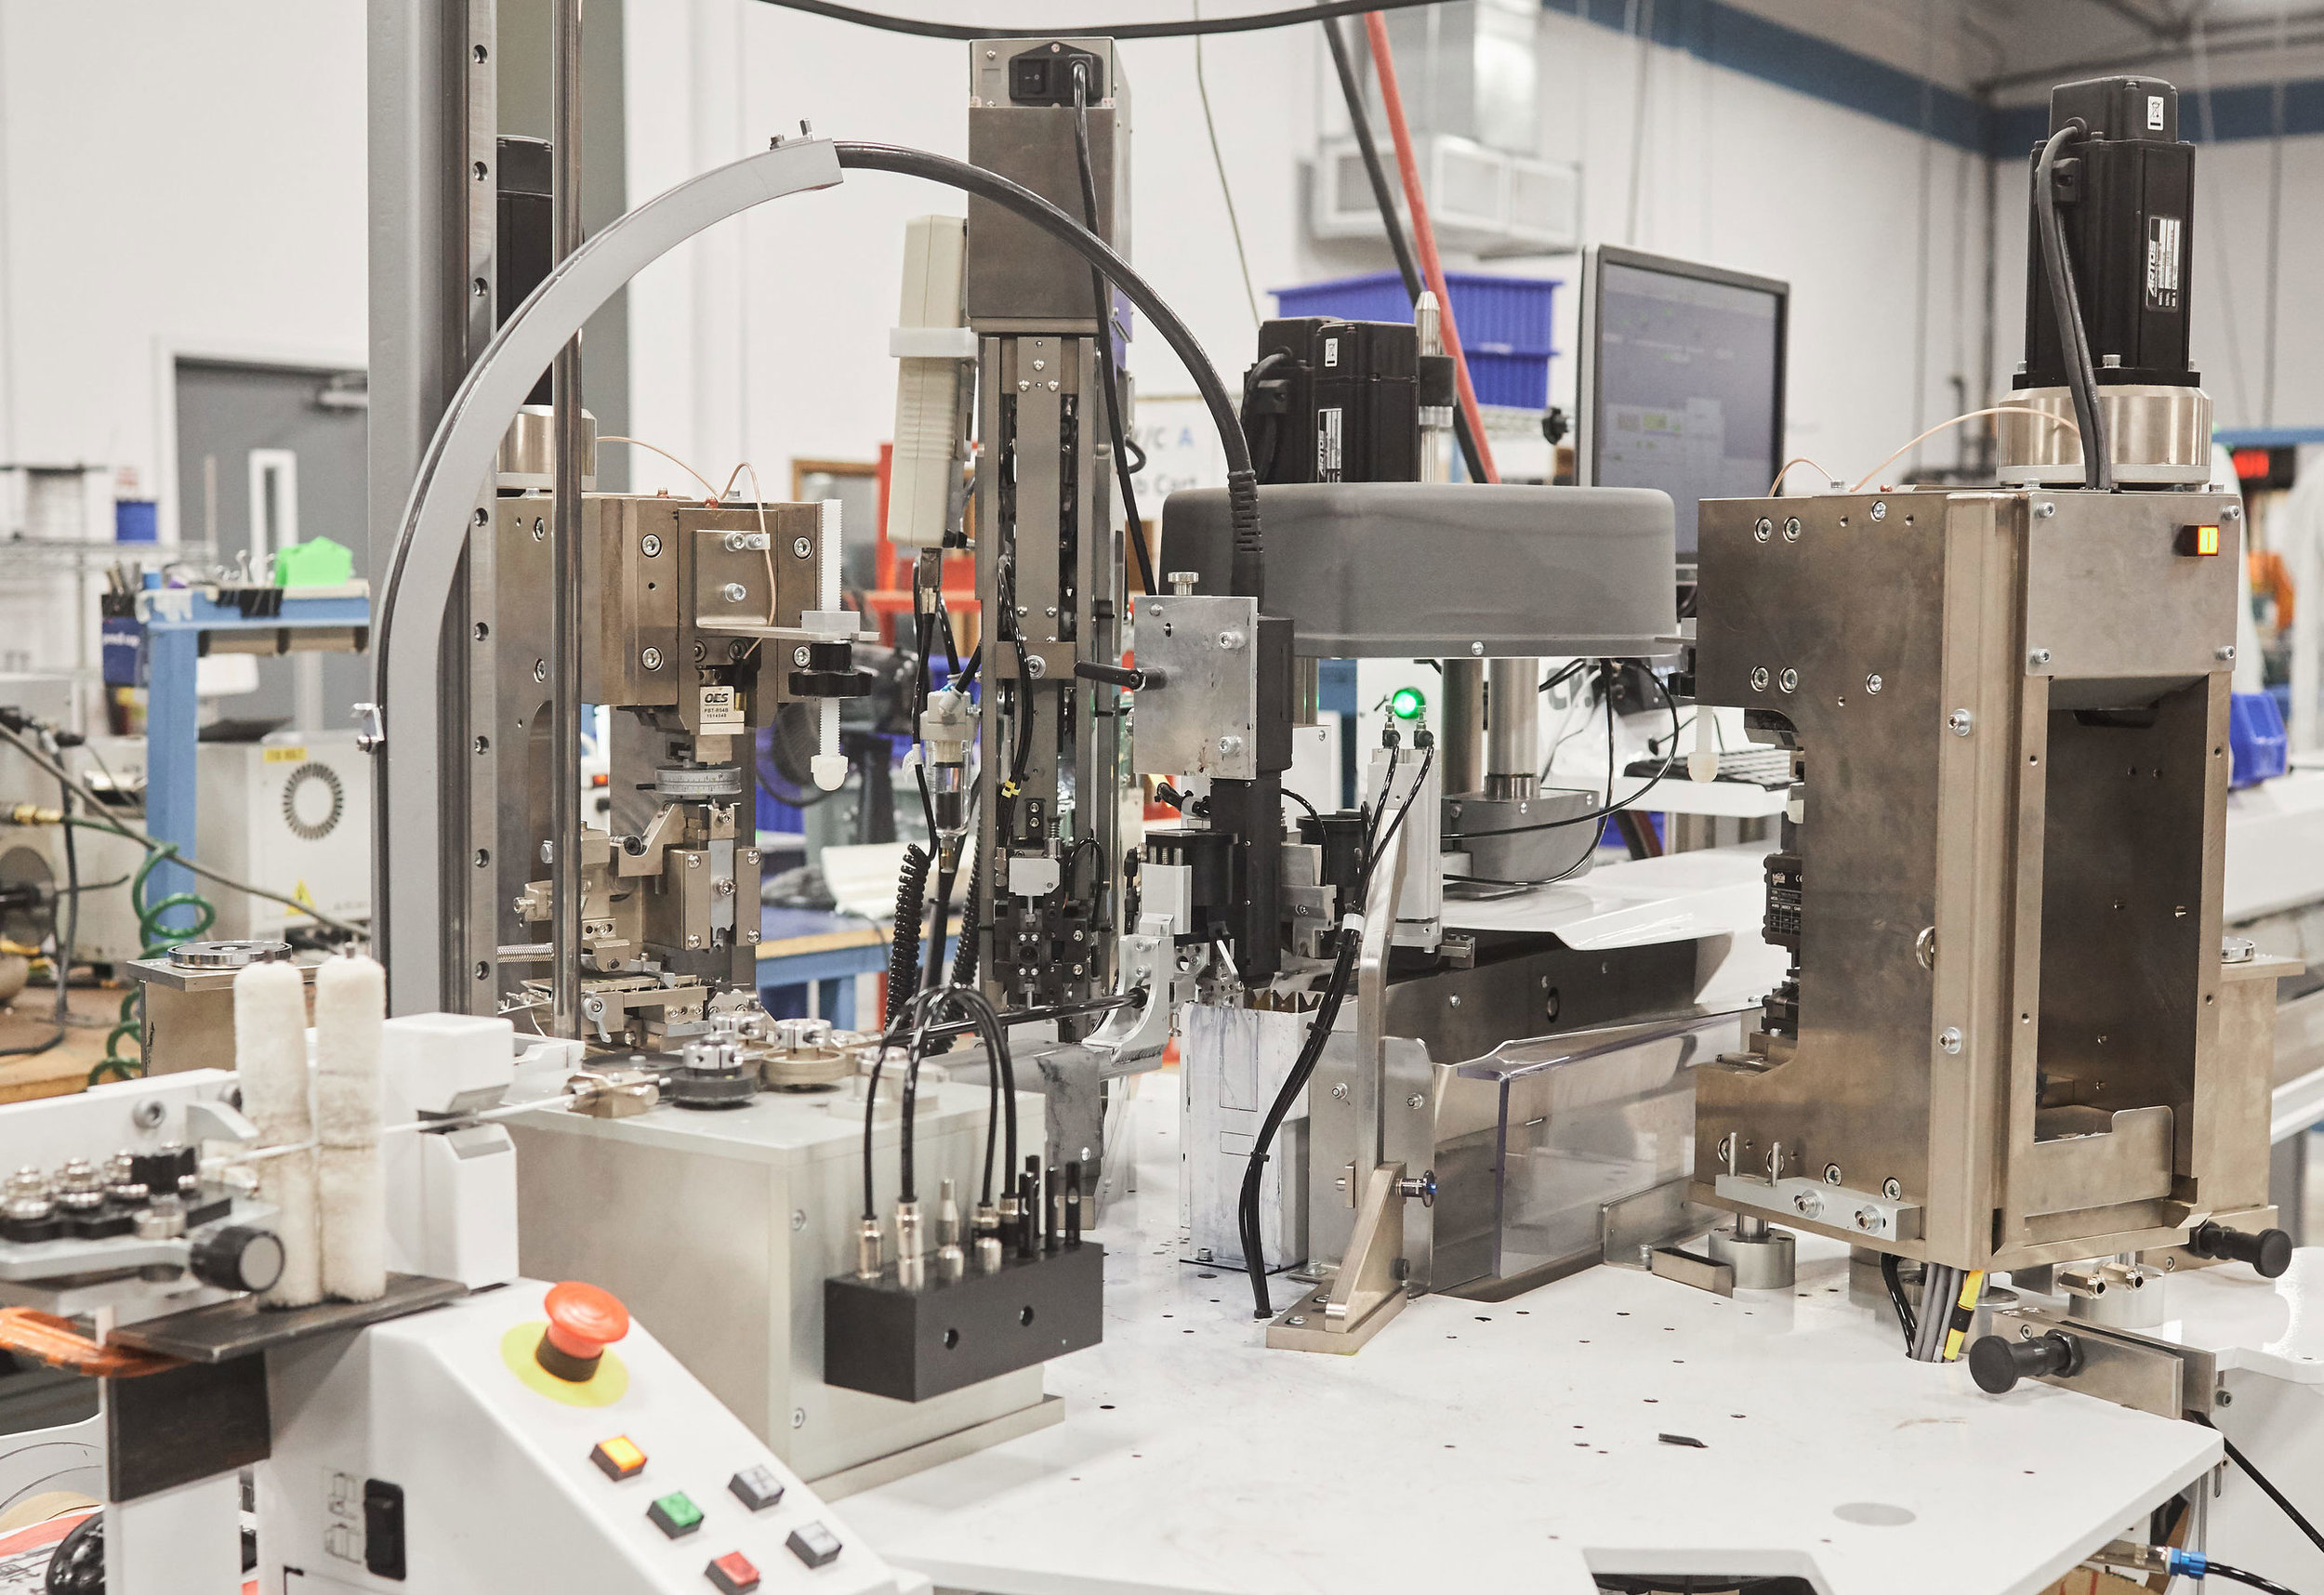 Fully automated wire processing - • Marking     •Seal application•Stripping    •Terminating•Cutting      • 30 awg to 10 awg